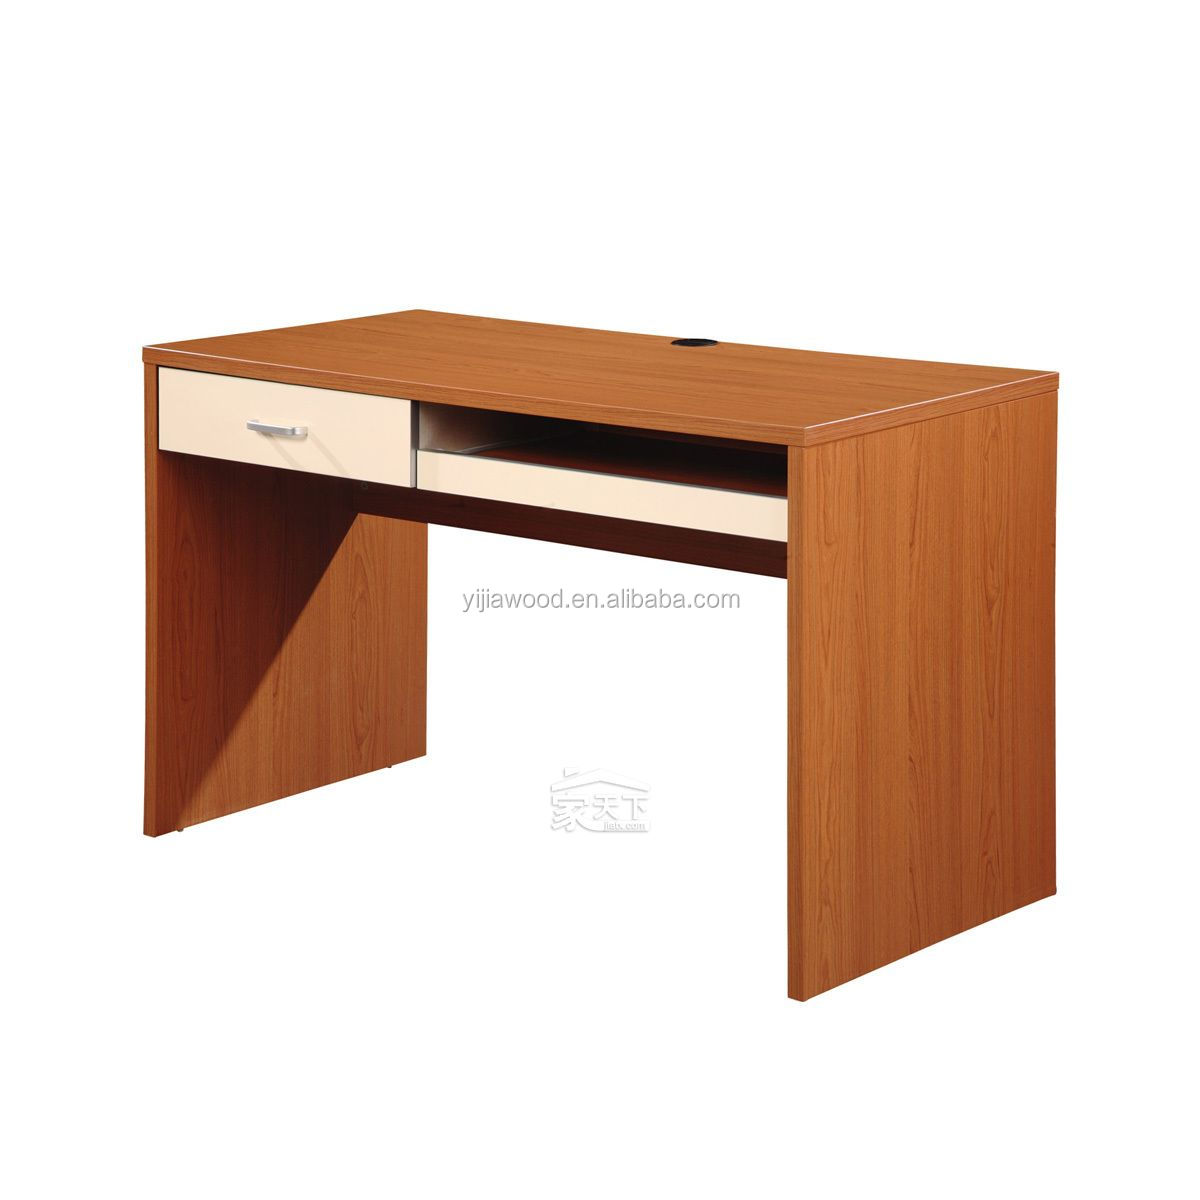 Simple Table Design amazoncom safco products 1943blsl simple design table desk with sled base blacksilver kitchen dining Study Table With Simple Designs Study Table With Simple Designs Suppliers And Manufacturers At Alibabacom